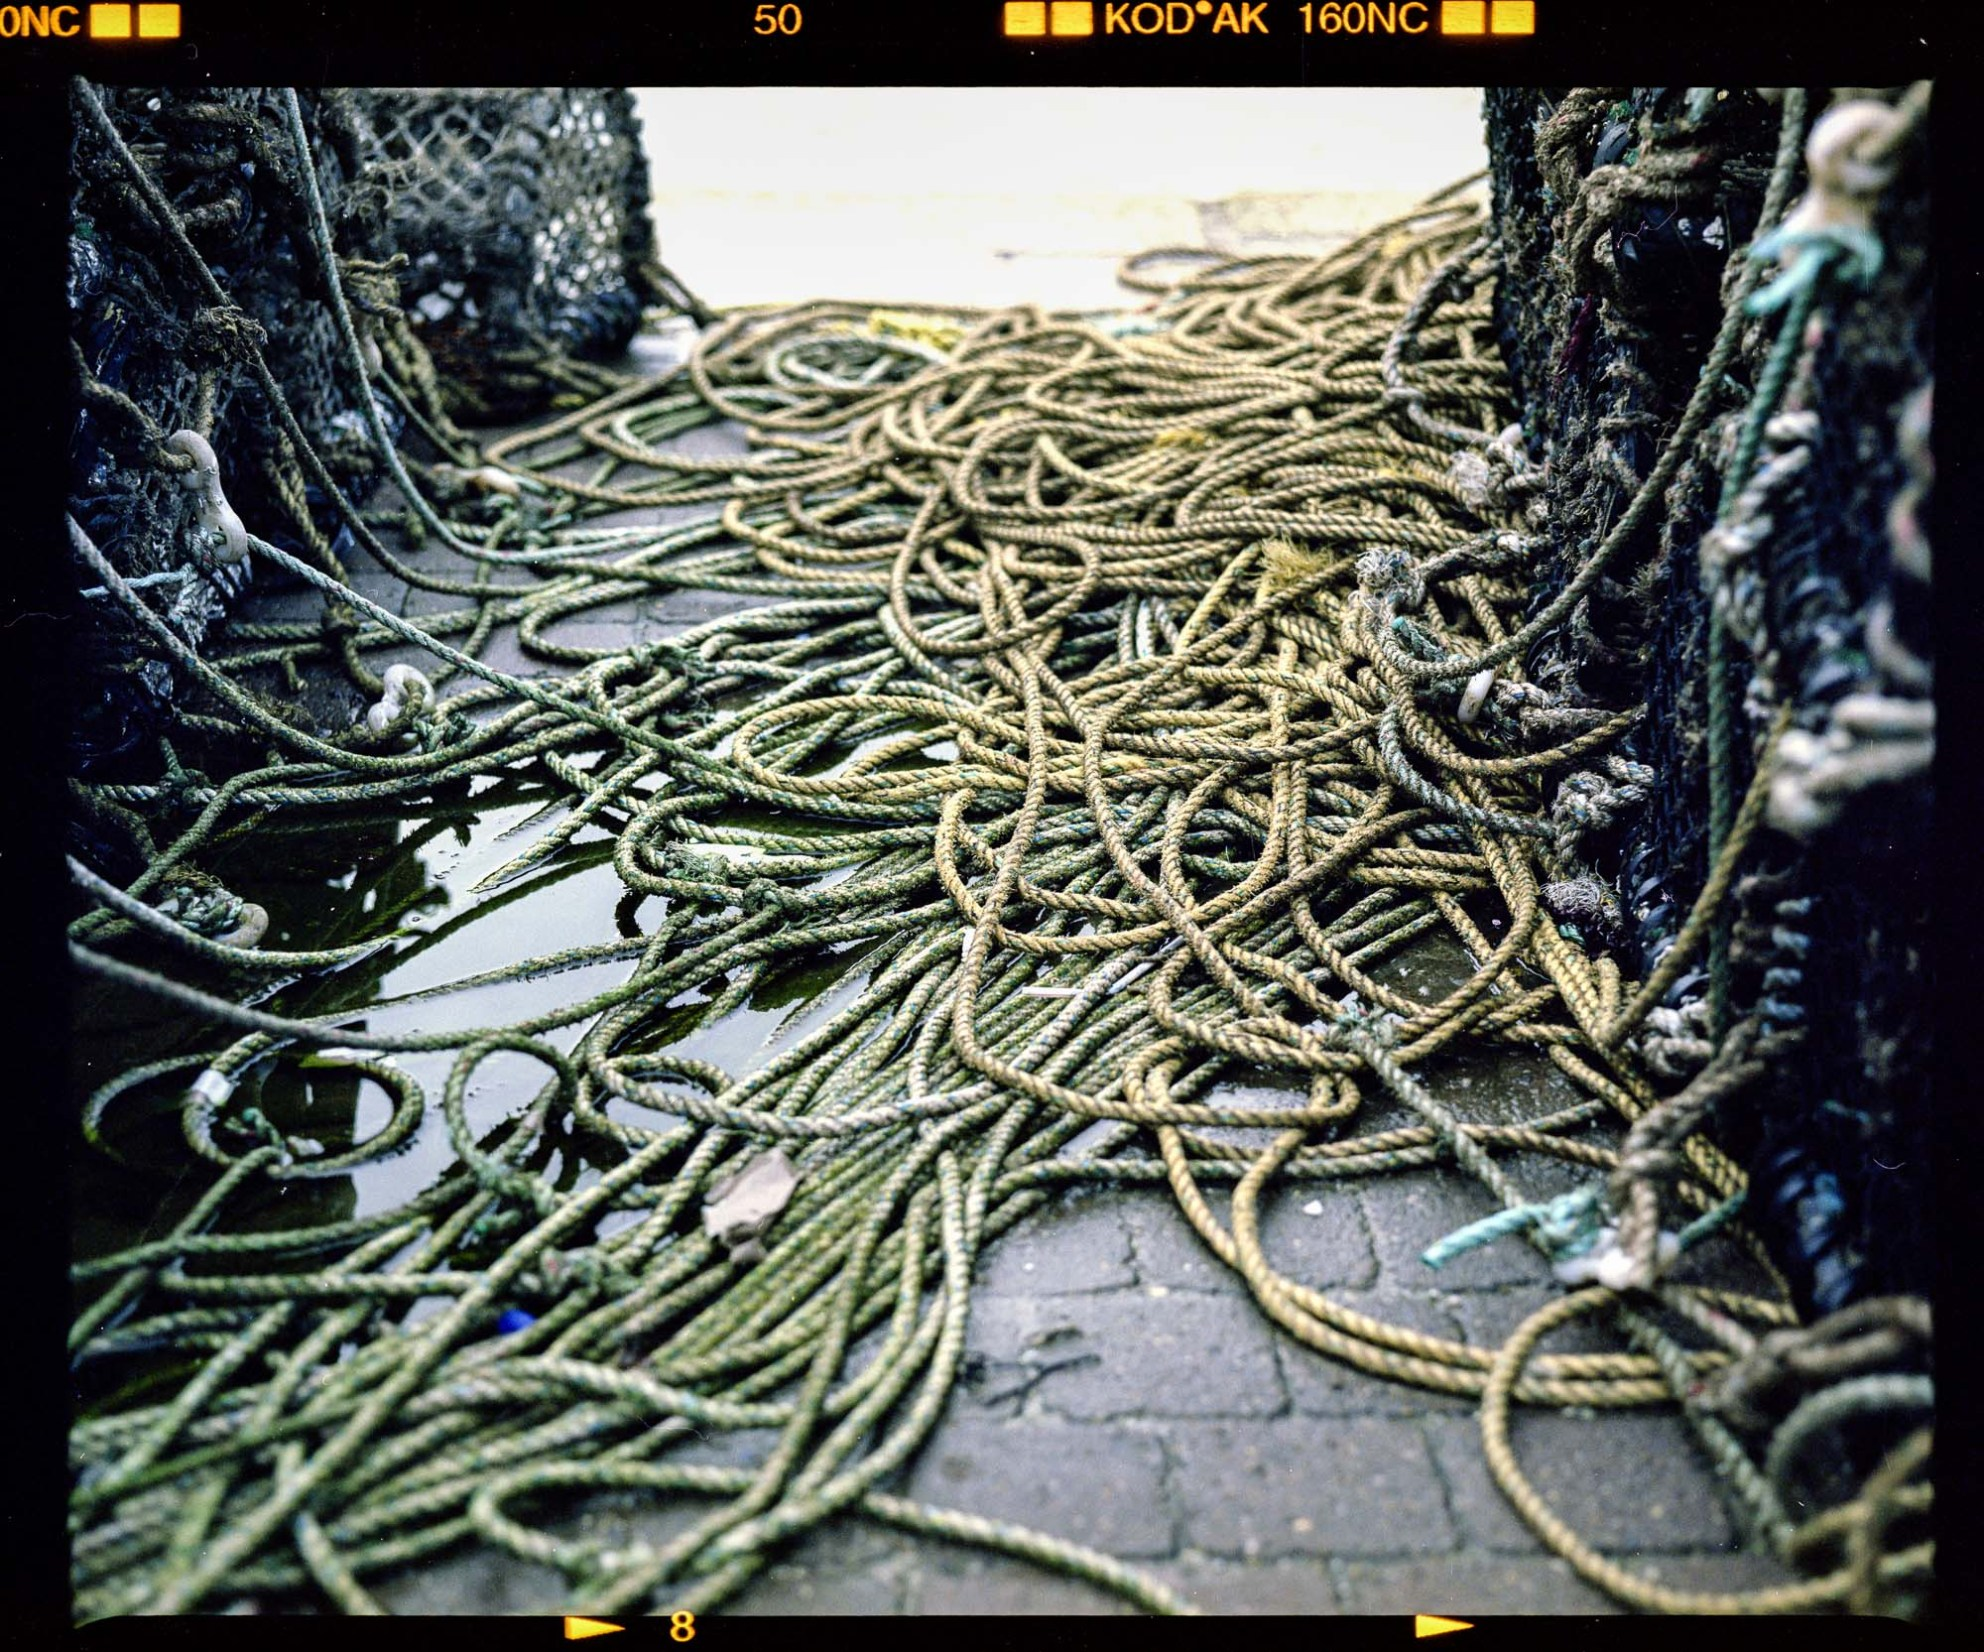 Fishing ropes coiled up shot on a mamiya rb 67 and kodak portra 160nc 120 film